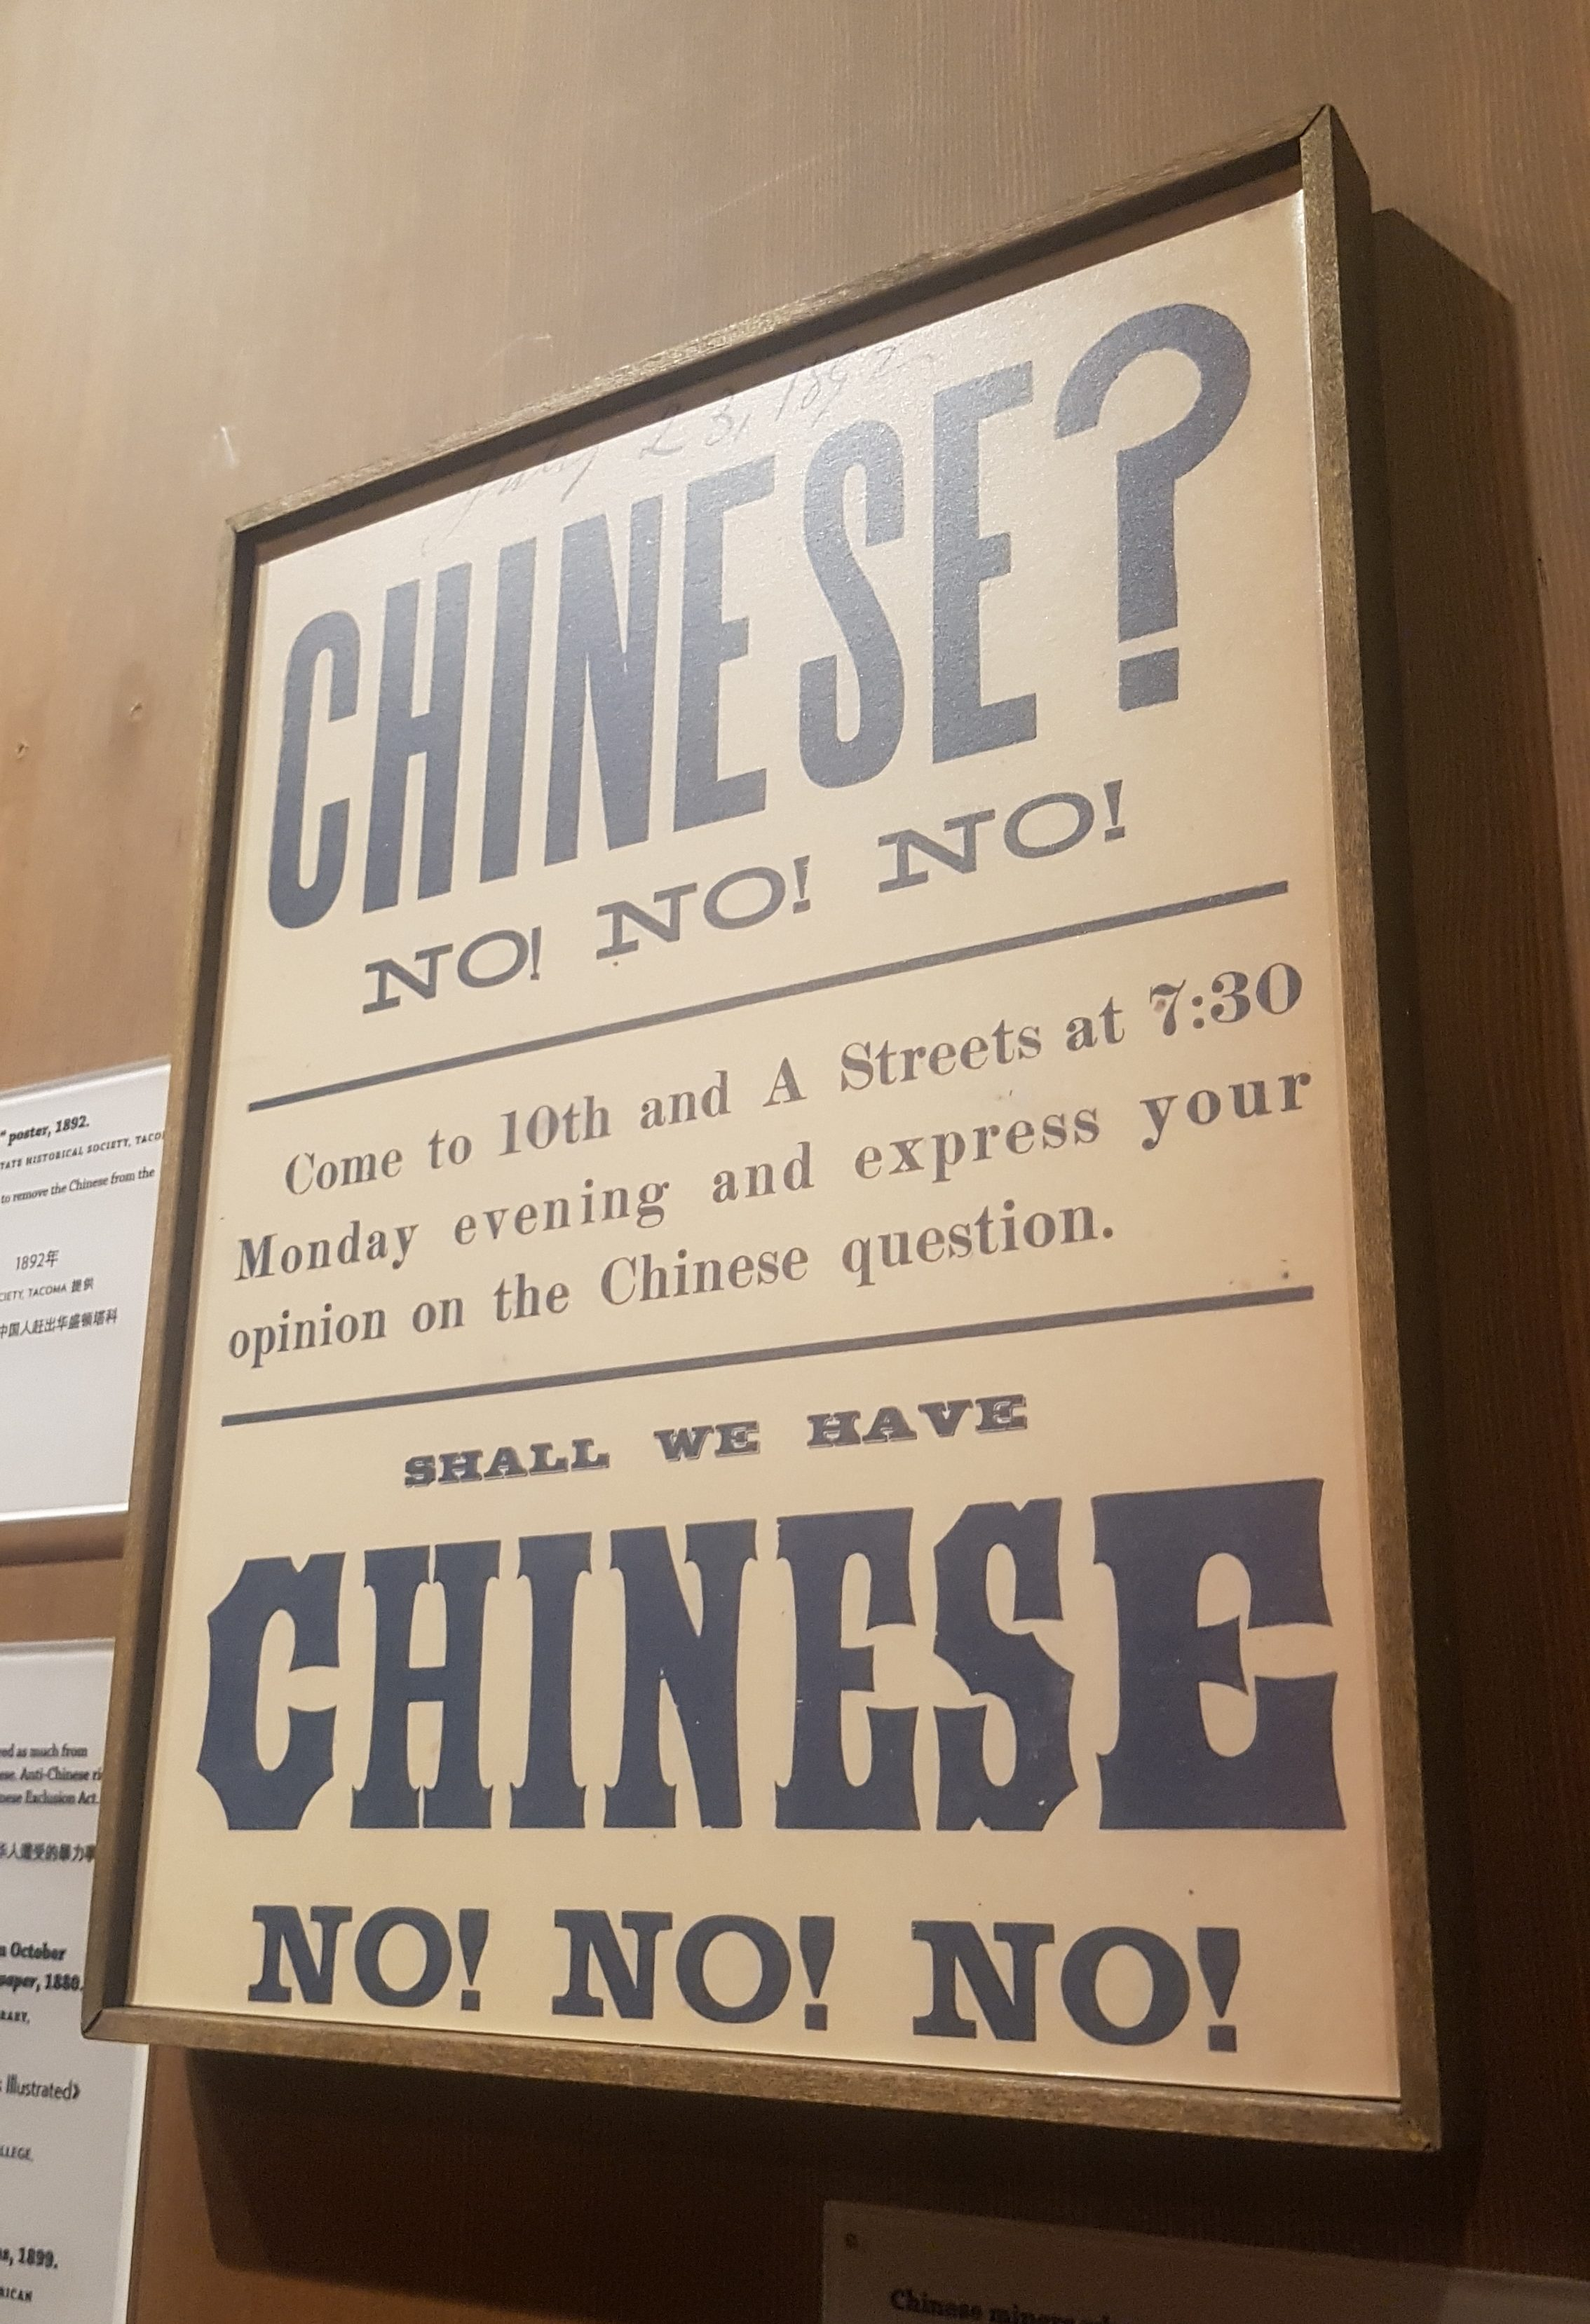 A historic anti-Chinese labor poster from the main collection at the Museum of Chinese in America.